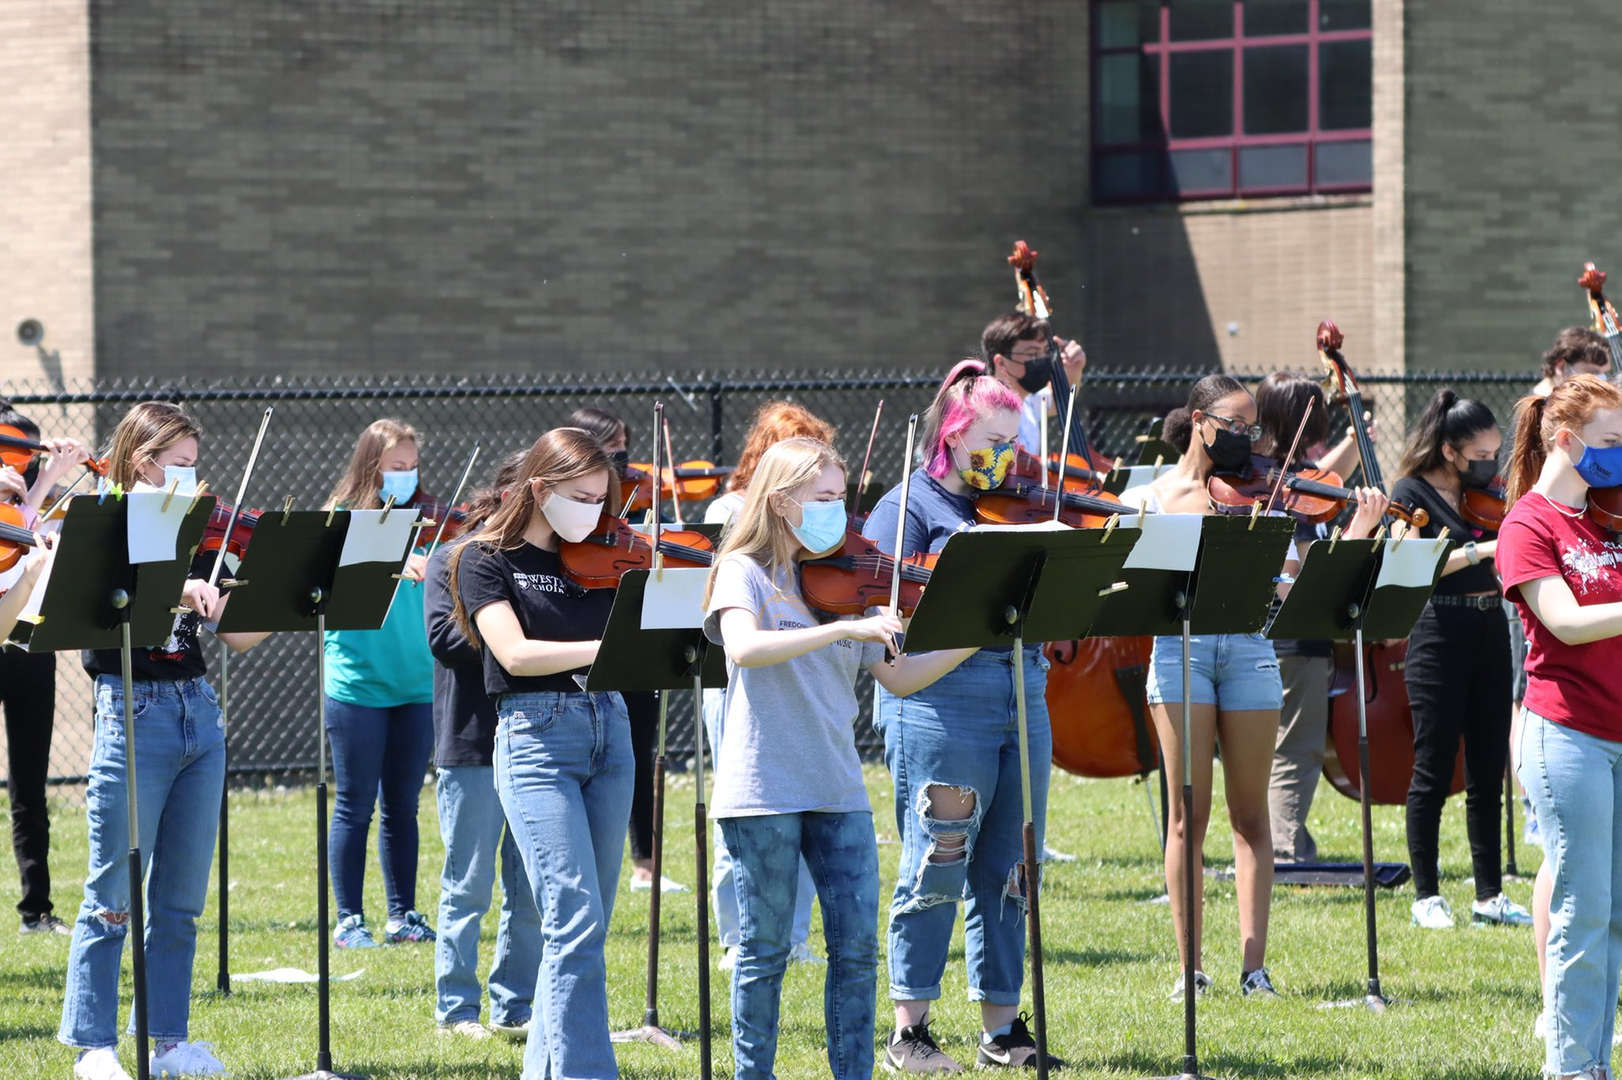 Student musicians playing outside on the field.